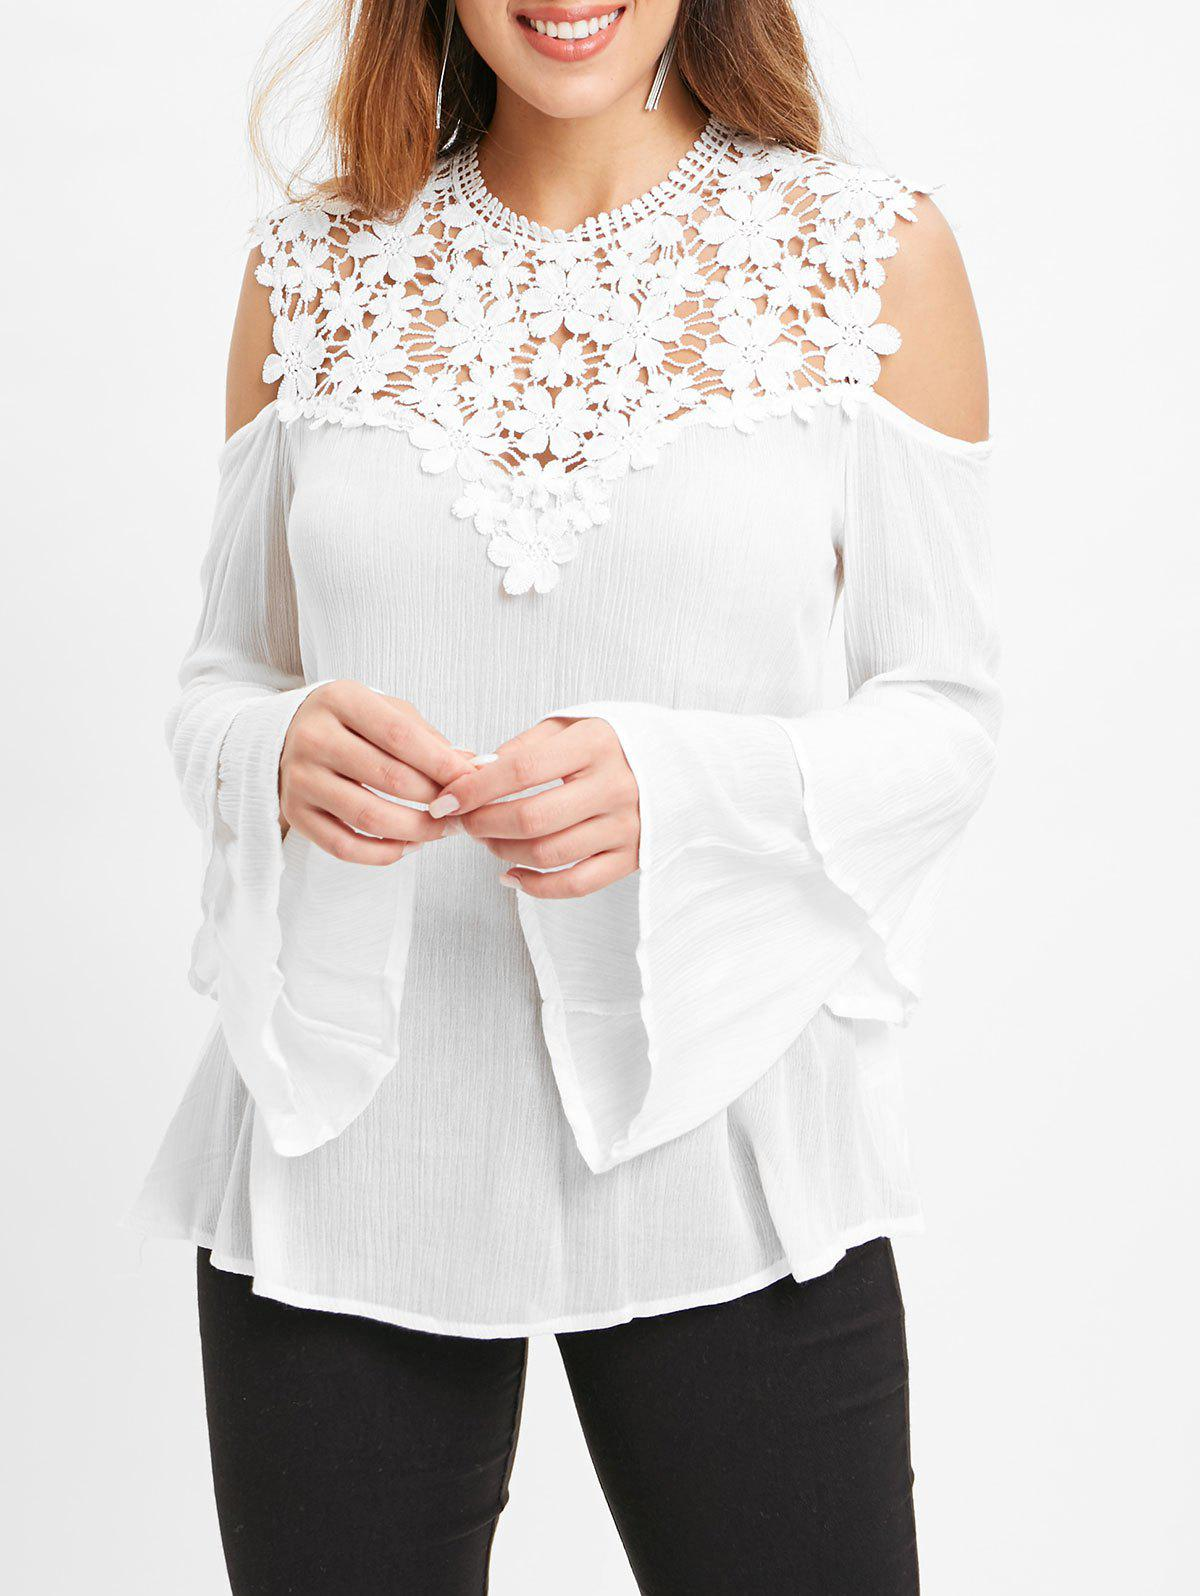 21bdf6e8d007b 54% OFF   2019 Lace Insert Cold Shoulder Bell Sleeve Blouse ...